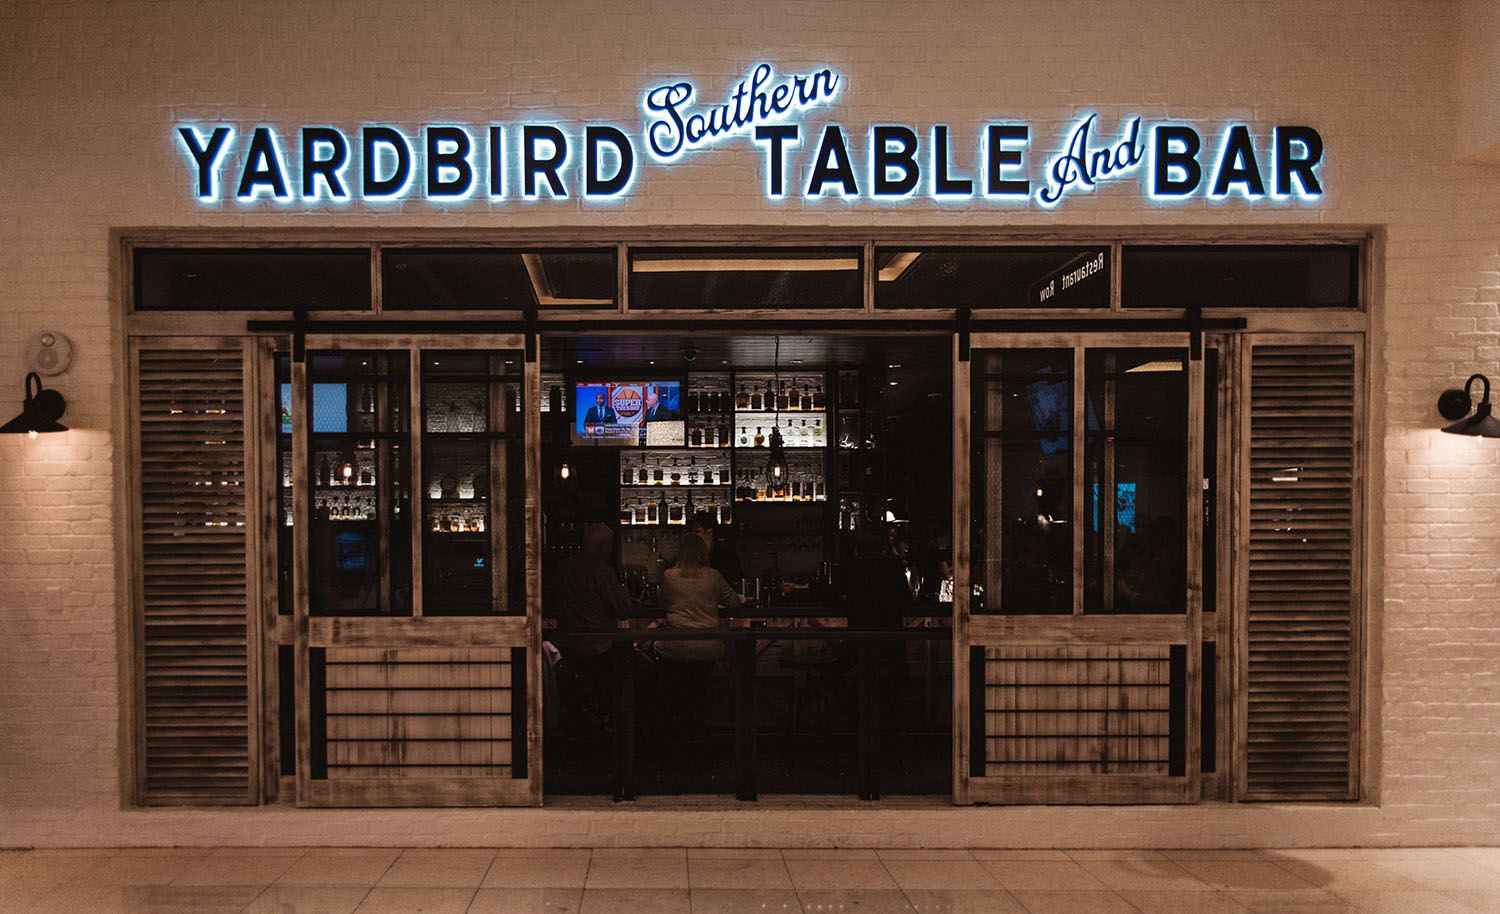 Yardbird Southern Table & Bar in Las Vegas